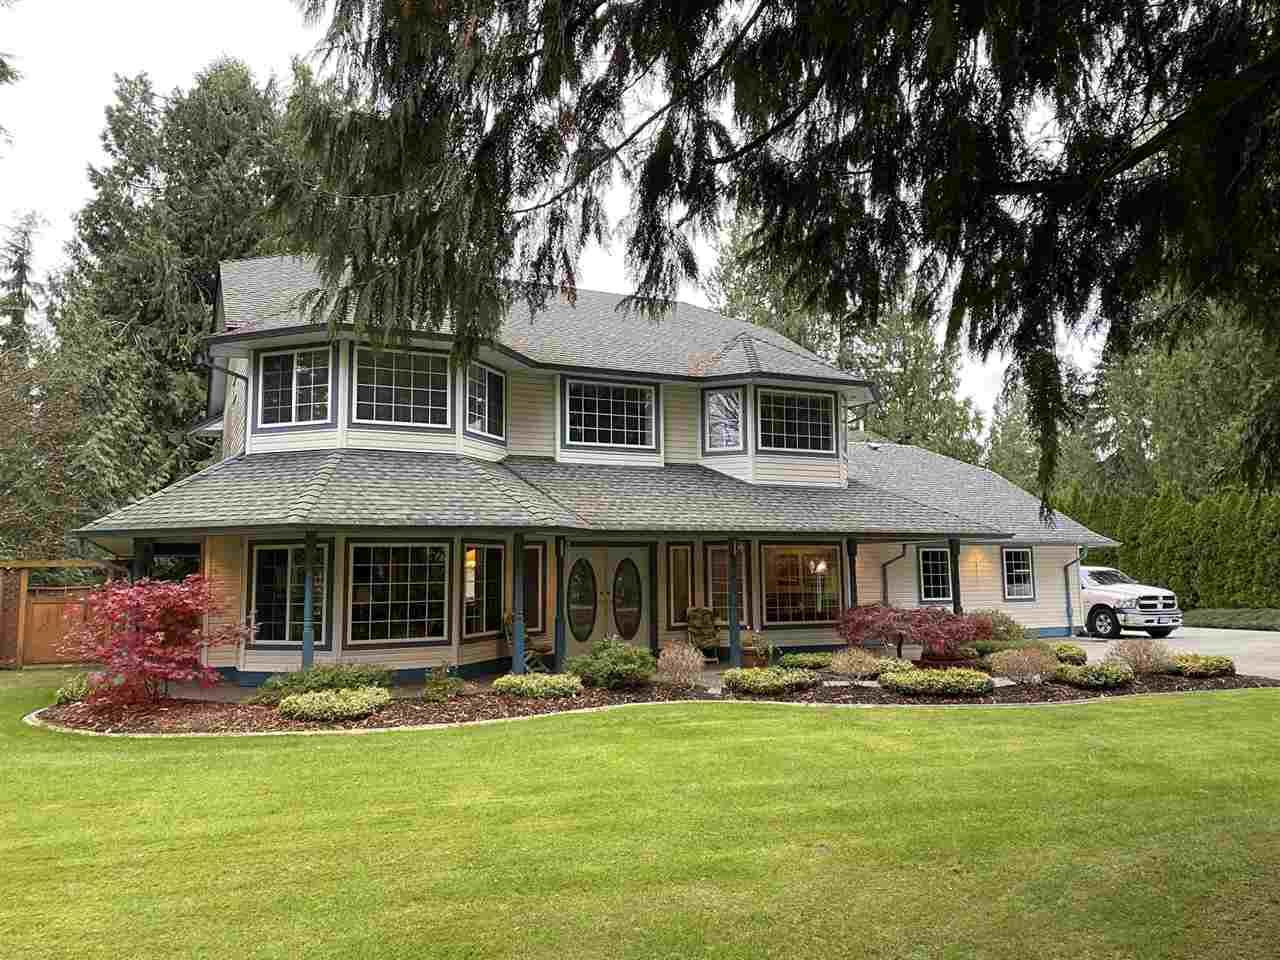 """Main Photo: 8021 WADE Terrace in Mission: Mission BC House for sale in """"GOLF COURSE/SPORTS PARK"""" : MLS®# R2517109"""